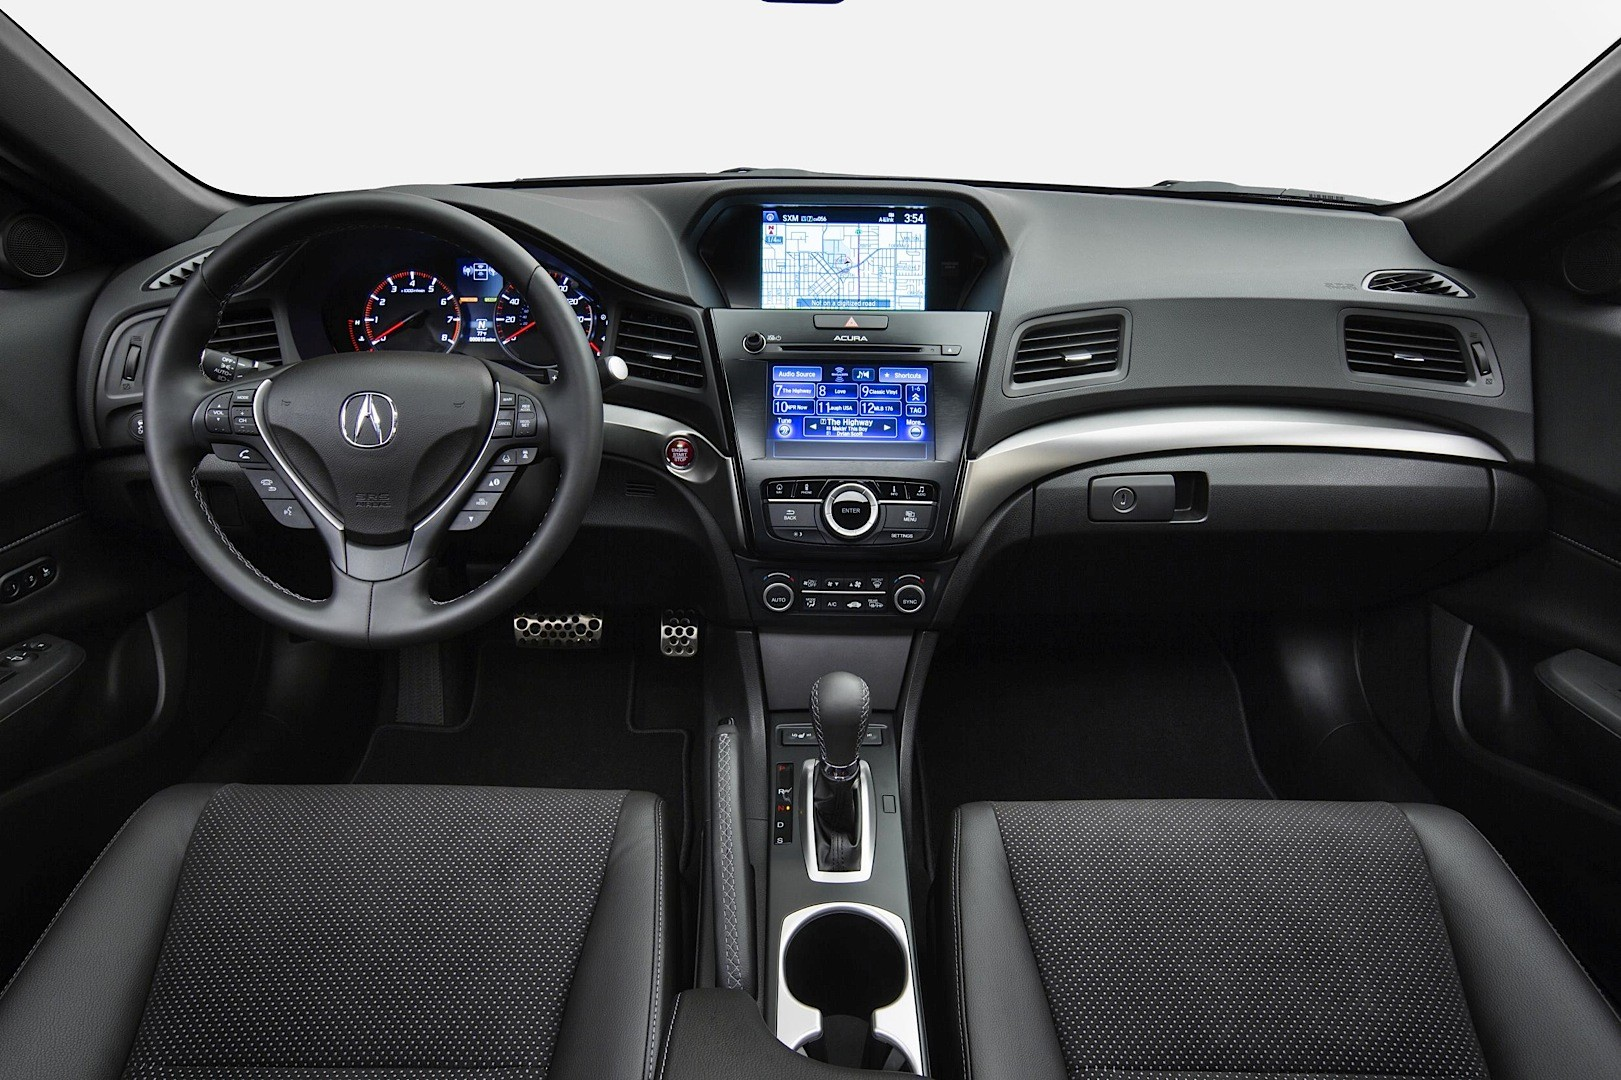 2016 Acura ILX Revealed With Standard 2.4L and 8-Speed ...